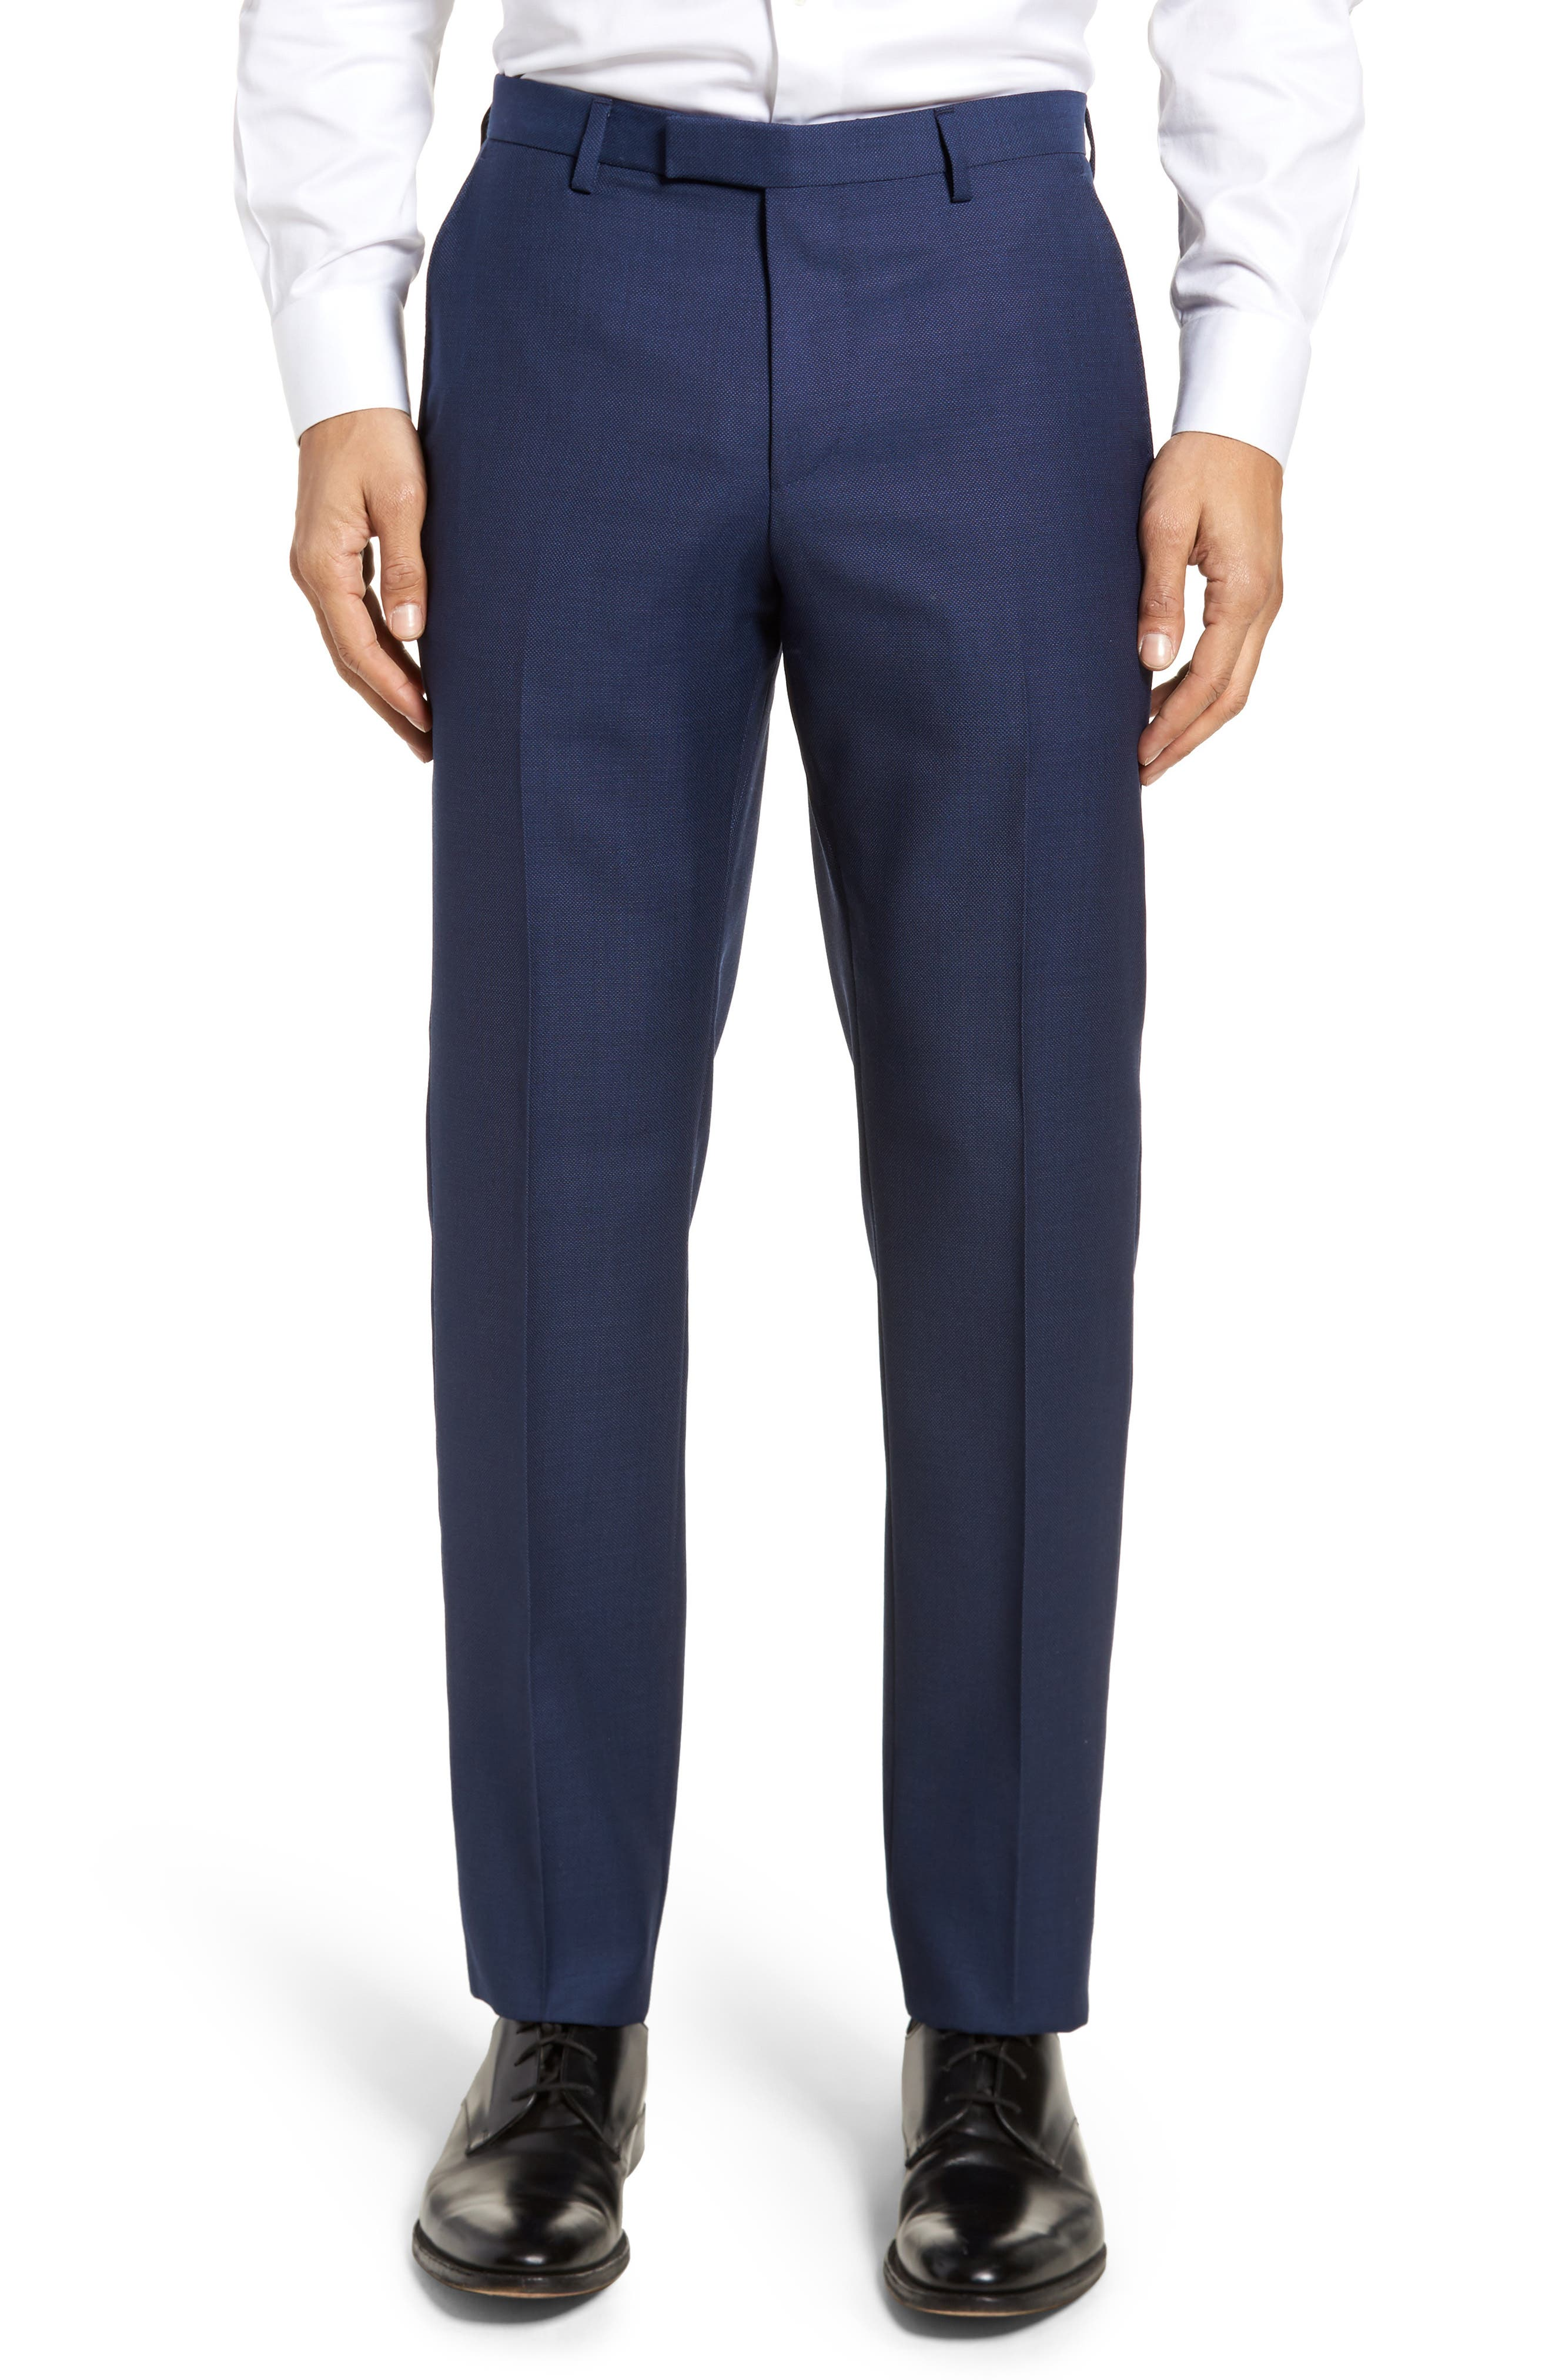 Leenon Flat Front Regular Fit Solid Wool Trousers,                         Main,                         color, 410